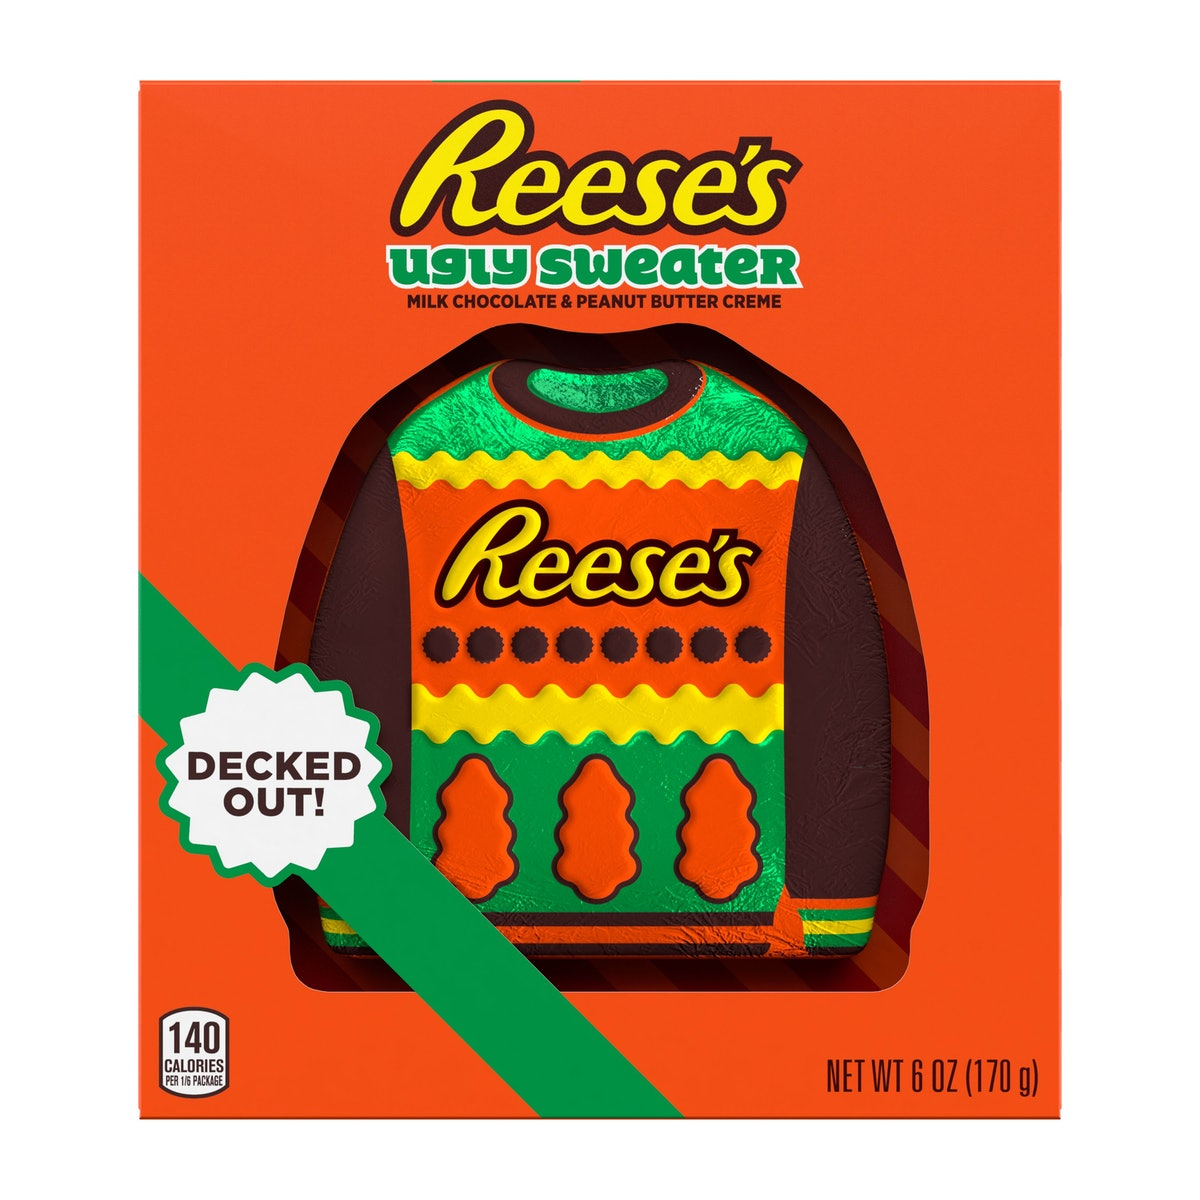 Hershey's holiday 2021 candy includes new Reese's Flavor, Grinch Kisses, and more.